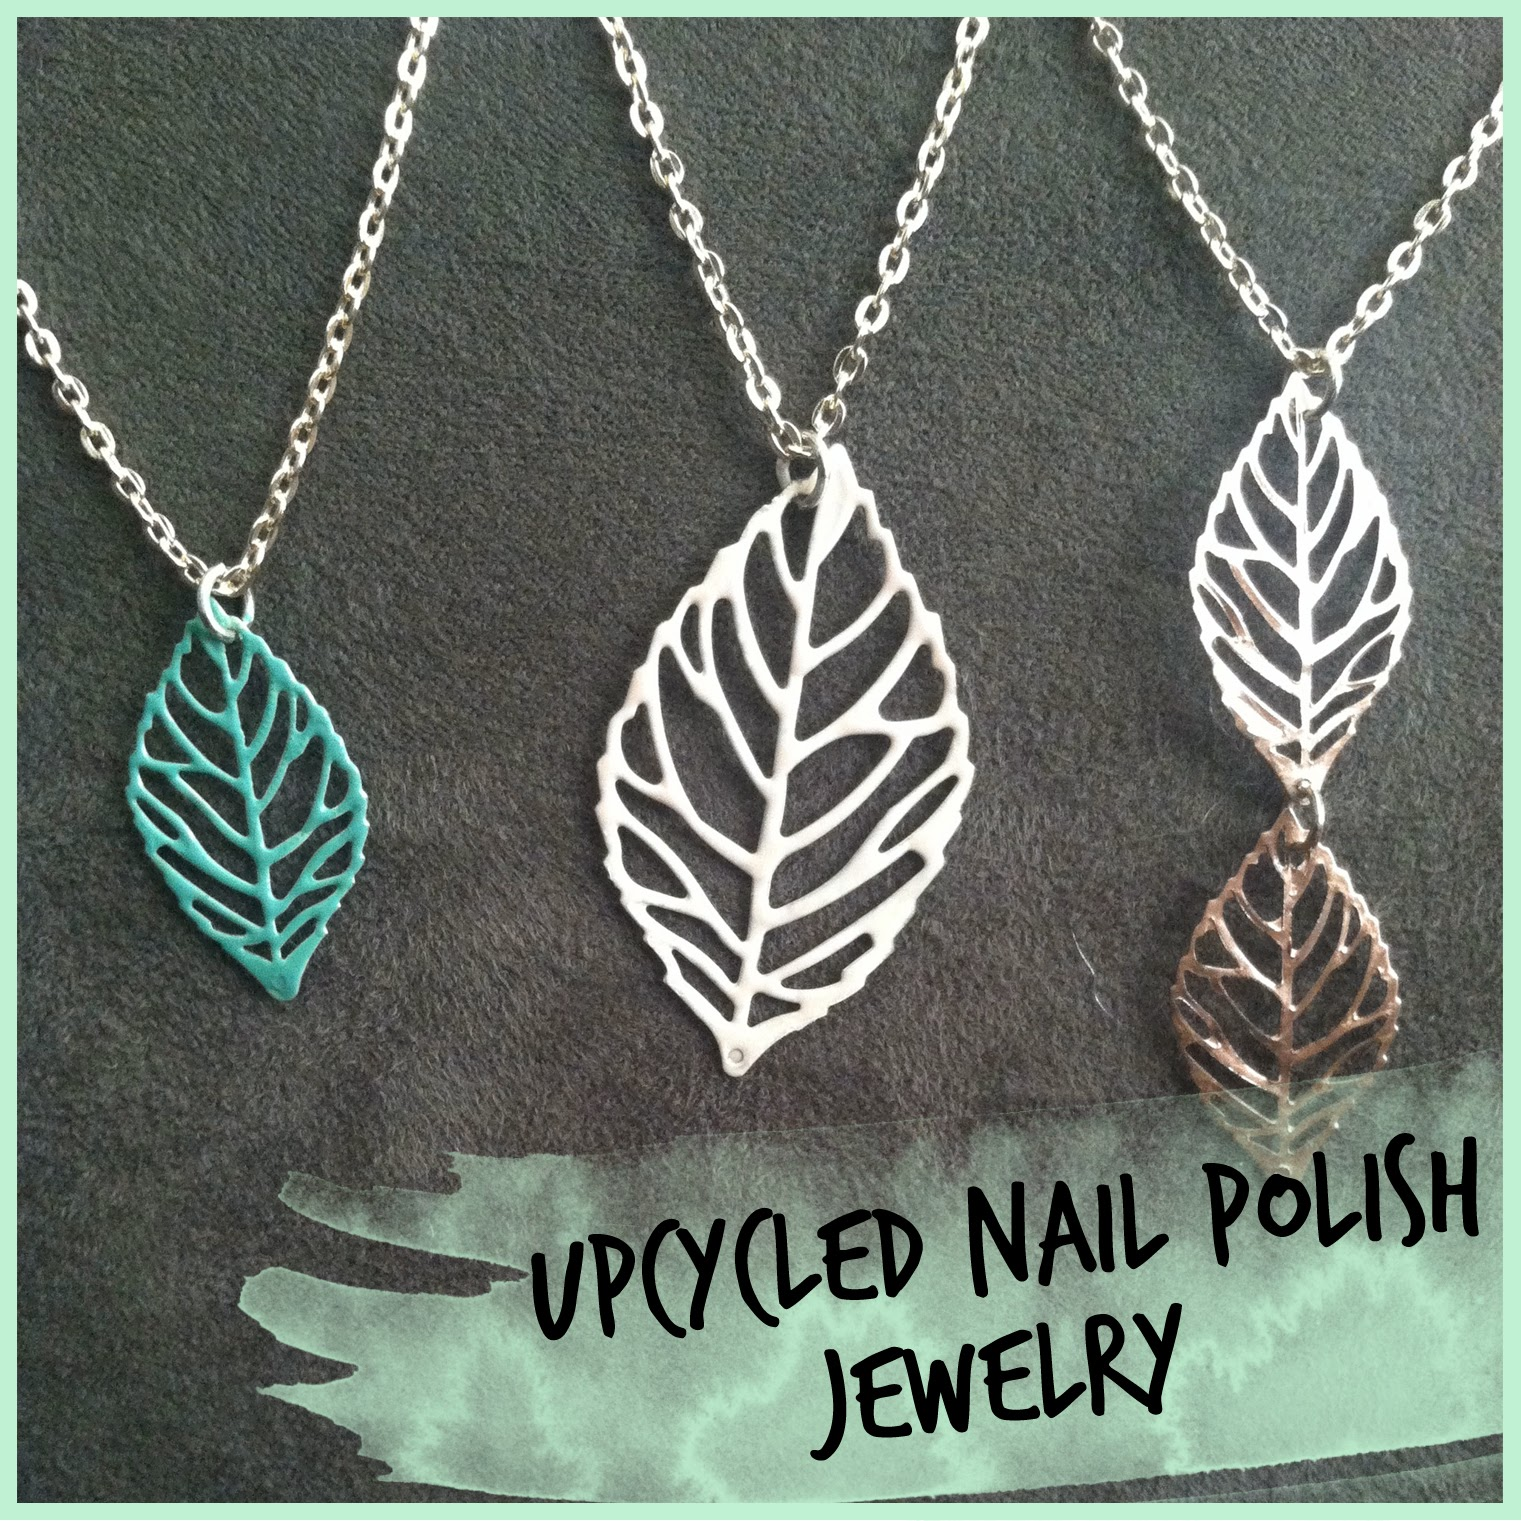 My Rolling Home: Upcycled nail polish jewelry